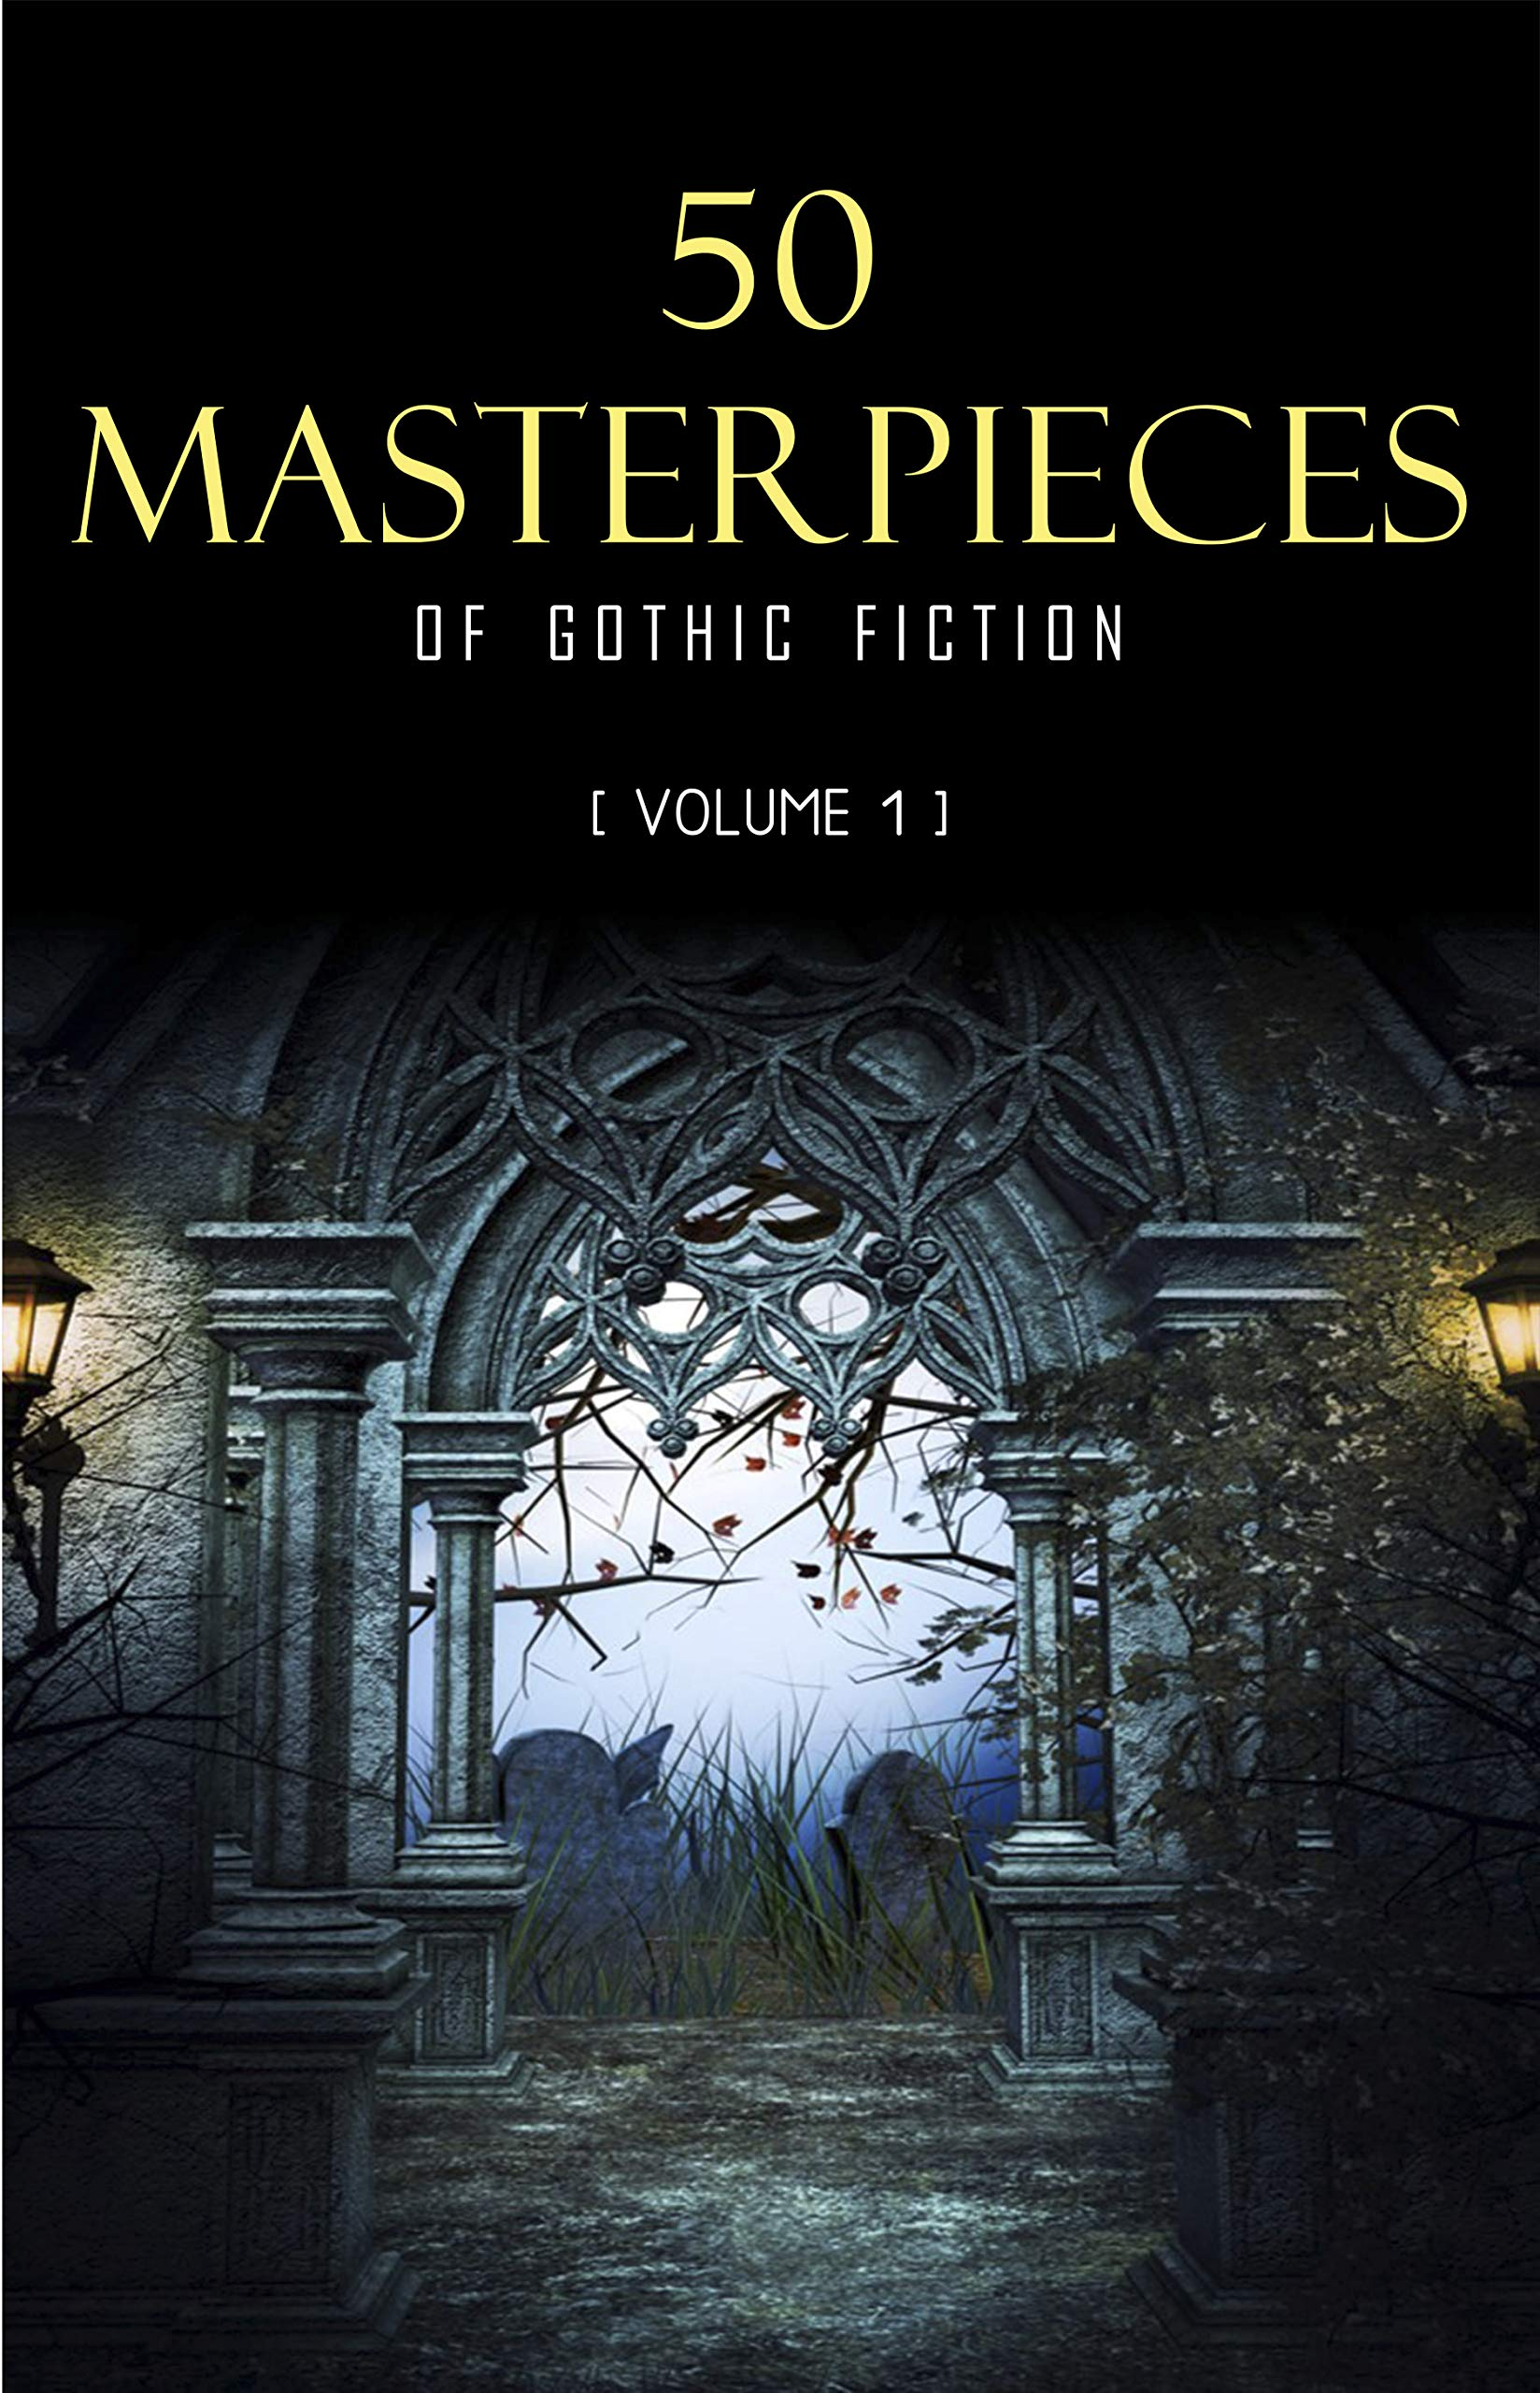 50 Masterpieces Of Gothic Fiction Vol. 1  Dracula Frankenstein The Tell Tale Heart The Picture Of Dorian Gray...  Halloween Stories   English Edition